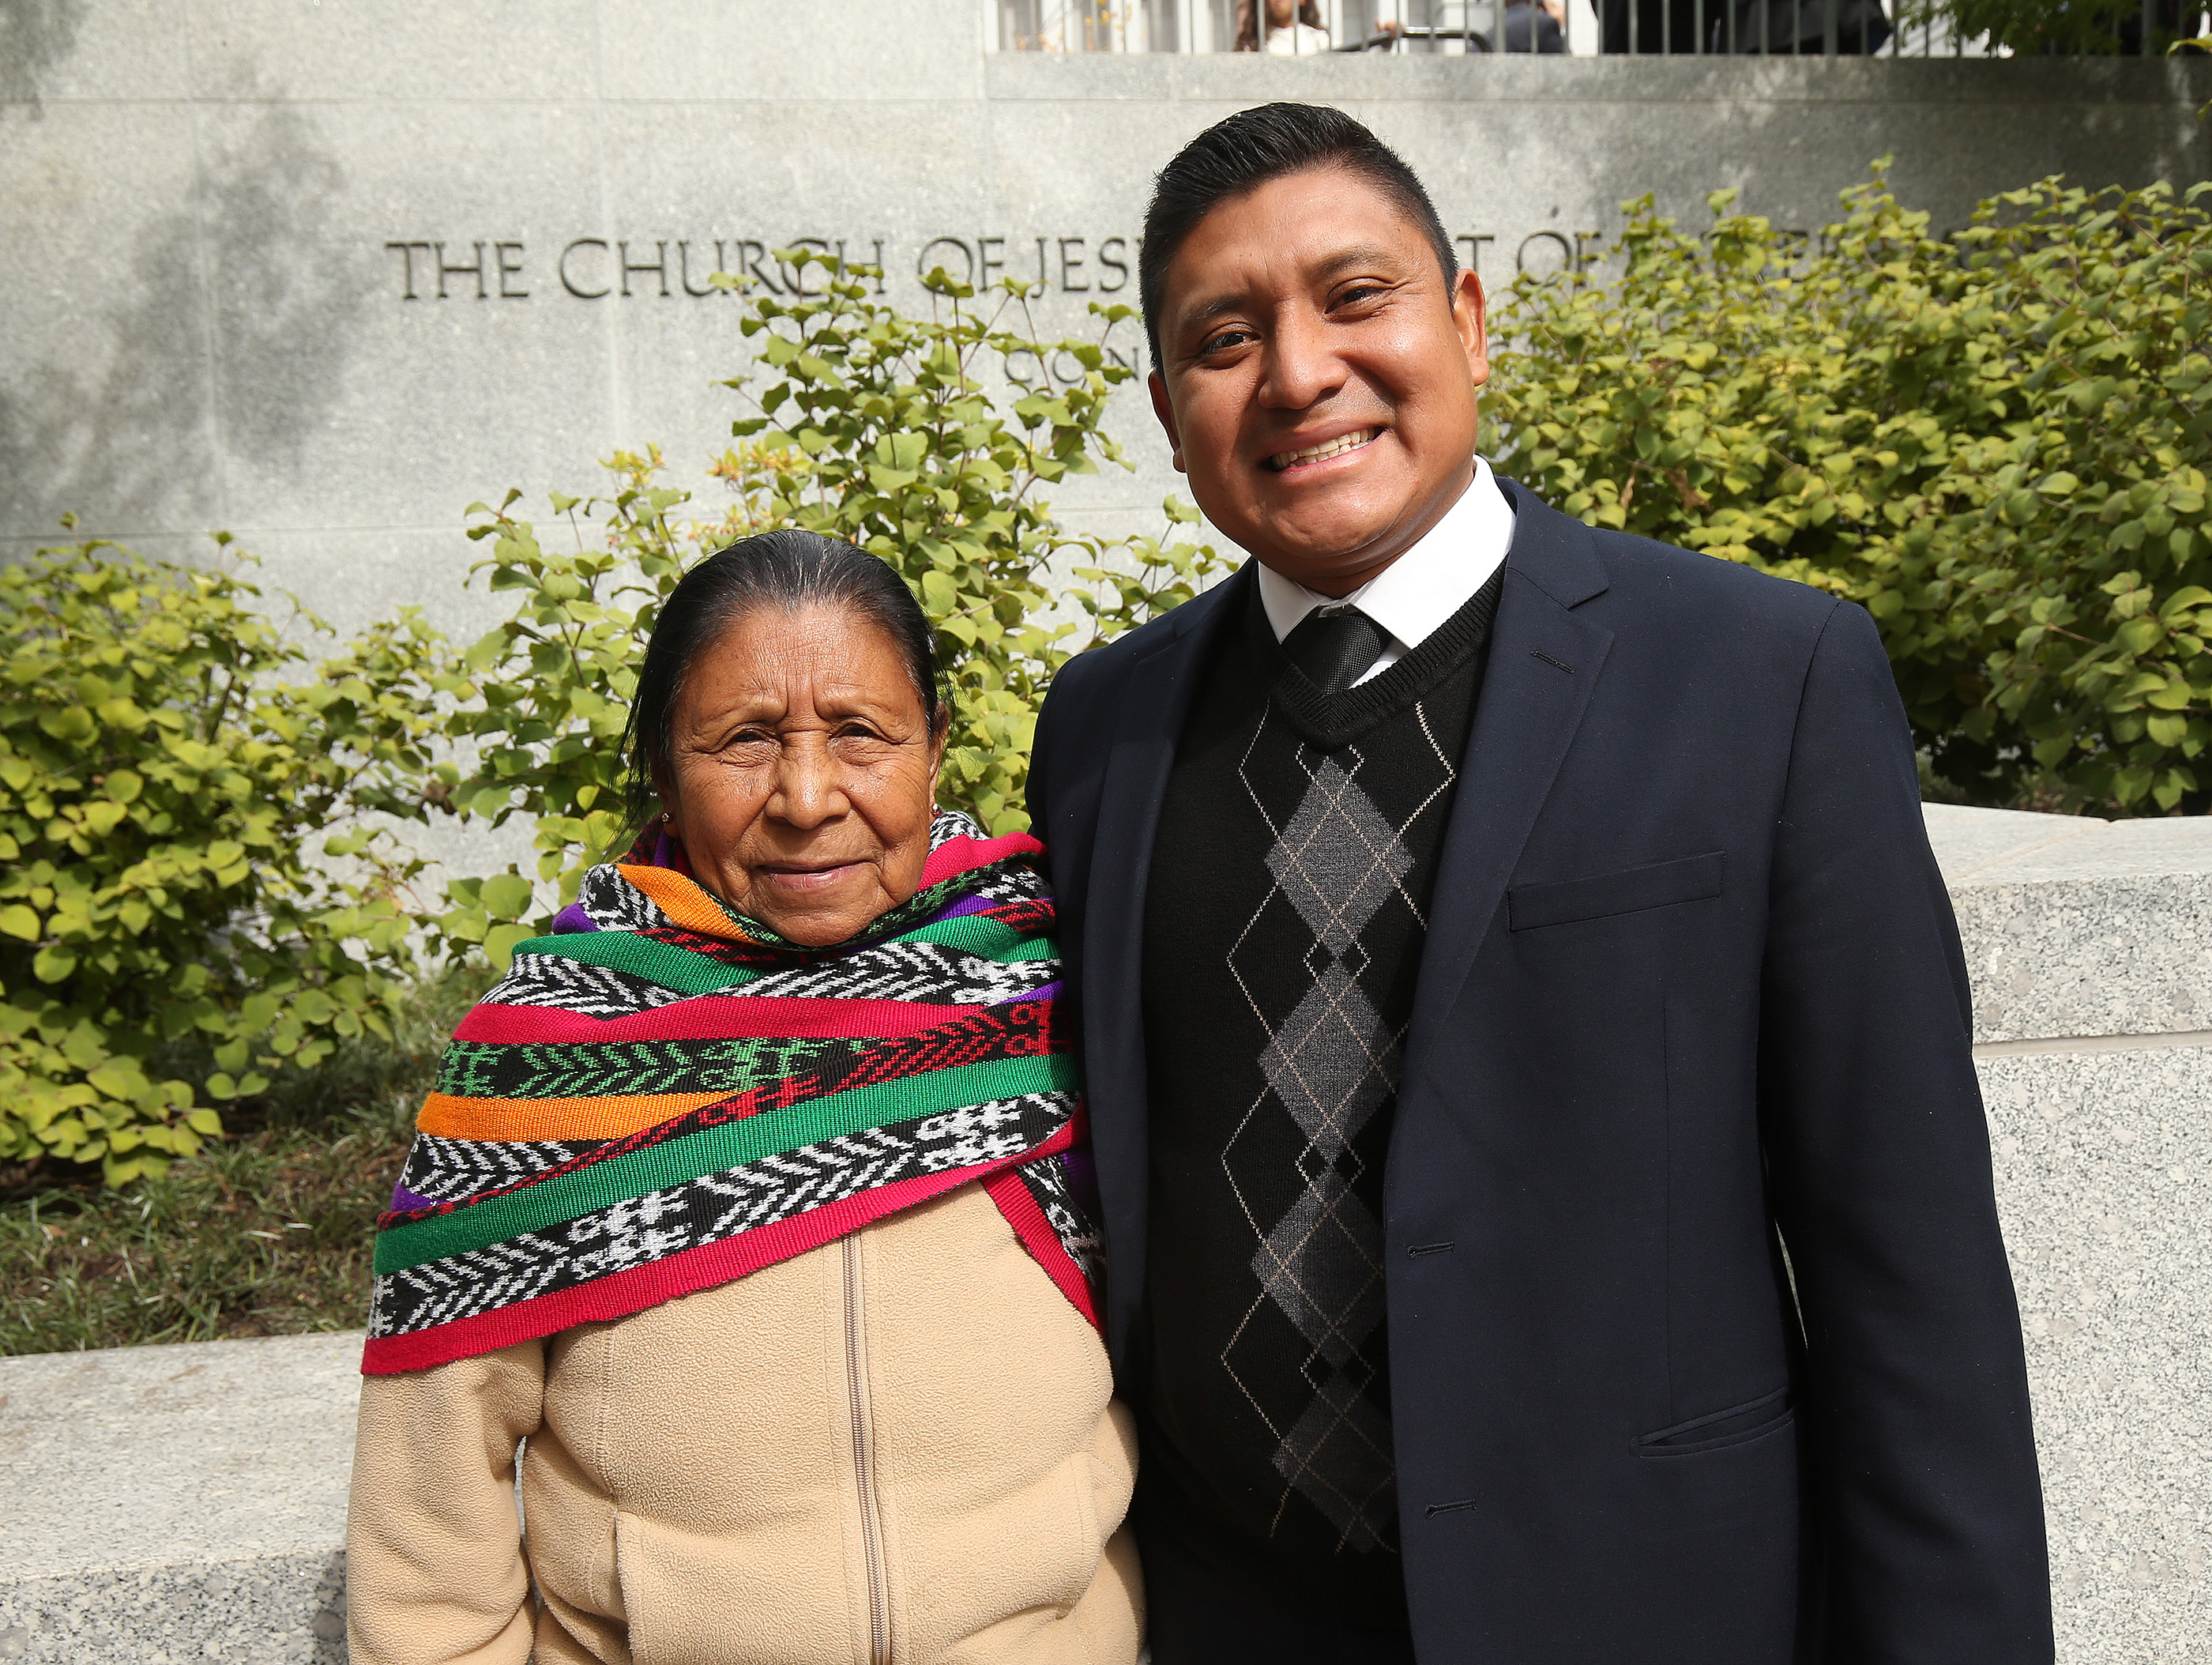 William Boror and his mother, Maria Valazquez, attend the 188th Semiannual General Conference of The Church of Jesus Christ of Latter-day Saints in Salt Lake City on Saturday, Oct. 6, 2018.